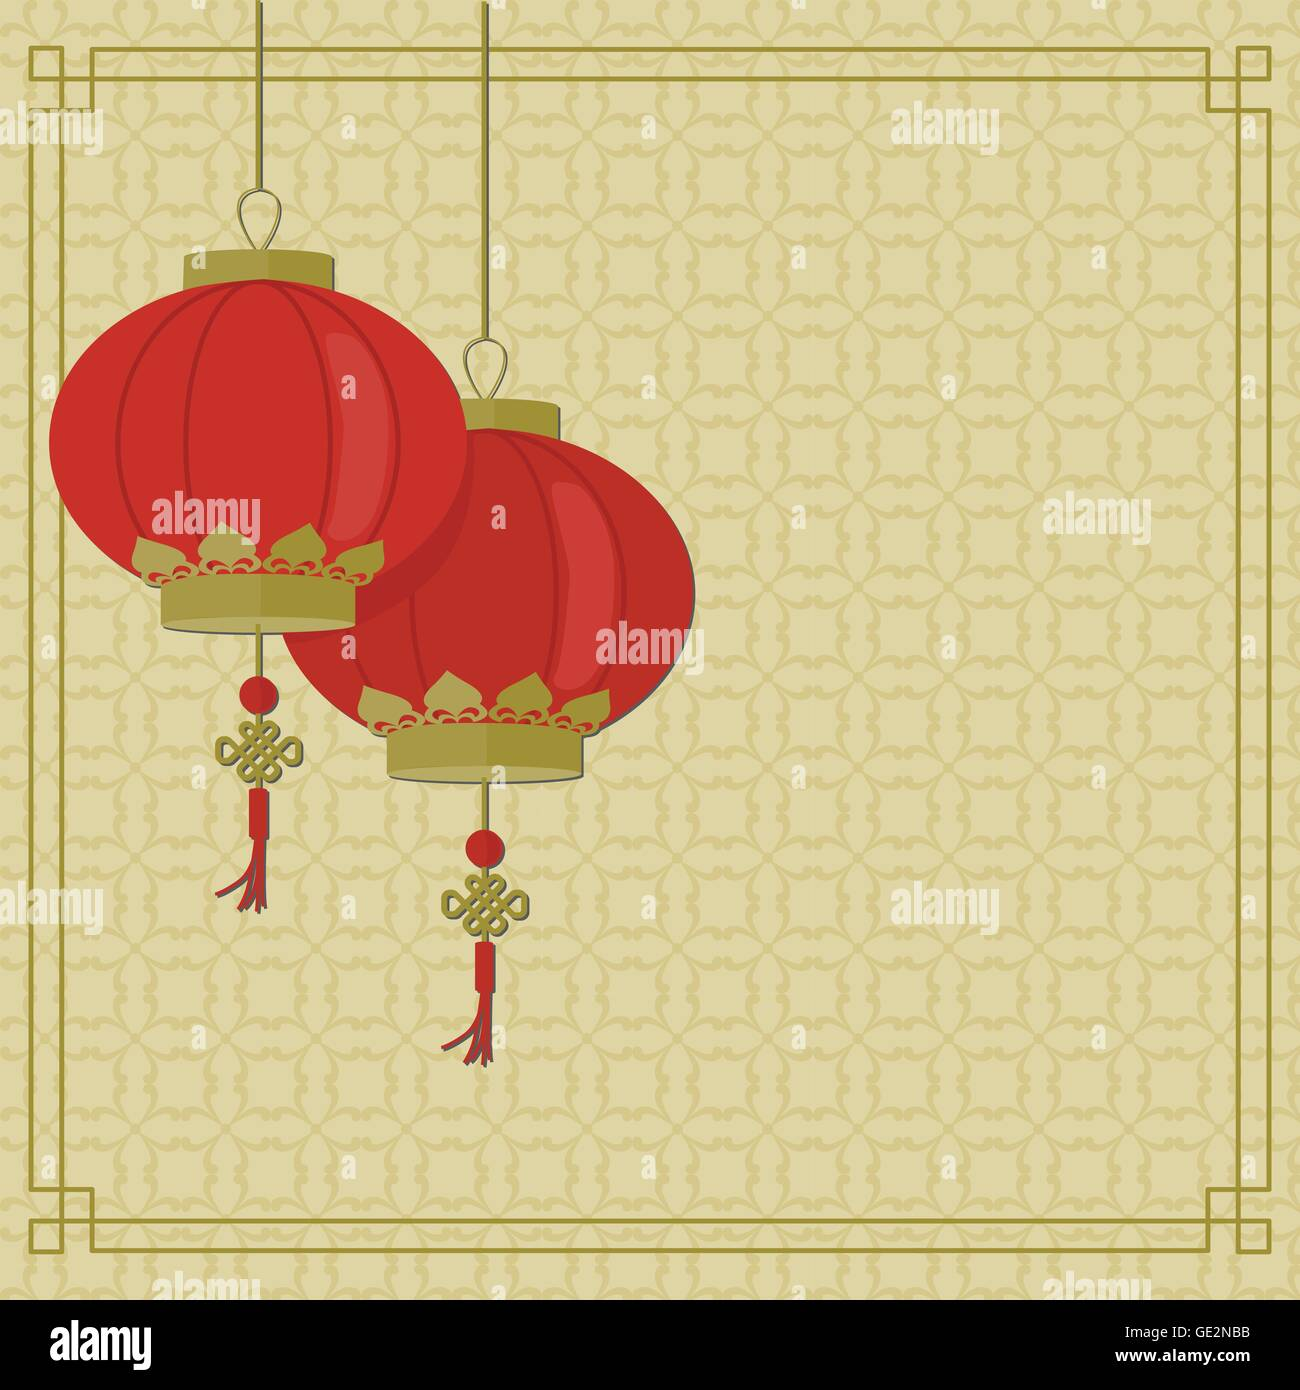 traditional chinese new year background can be used for wallpaper pattern fills web page design surface textures greeting